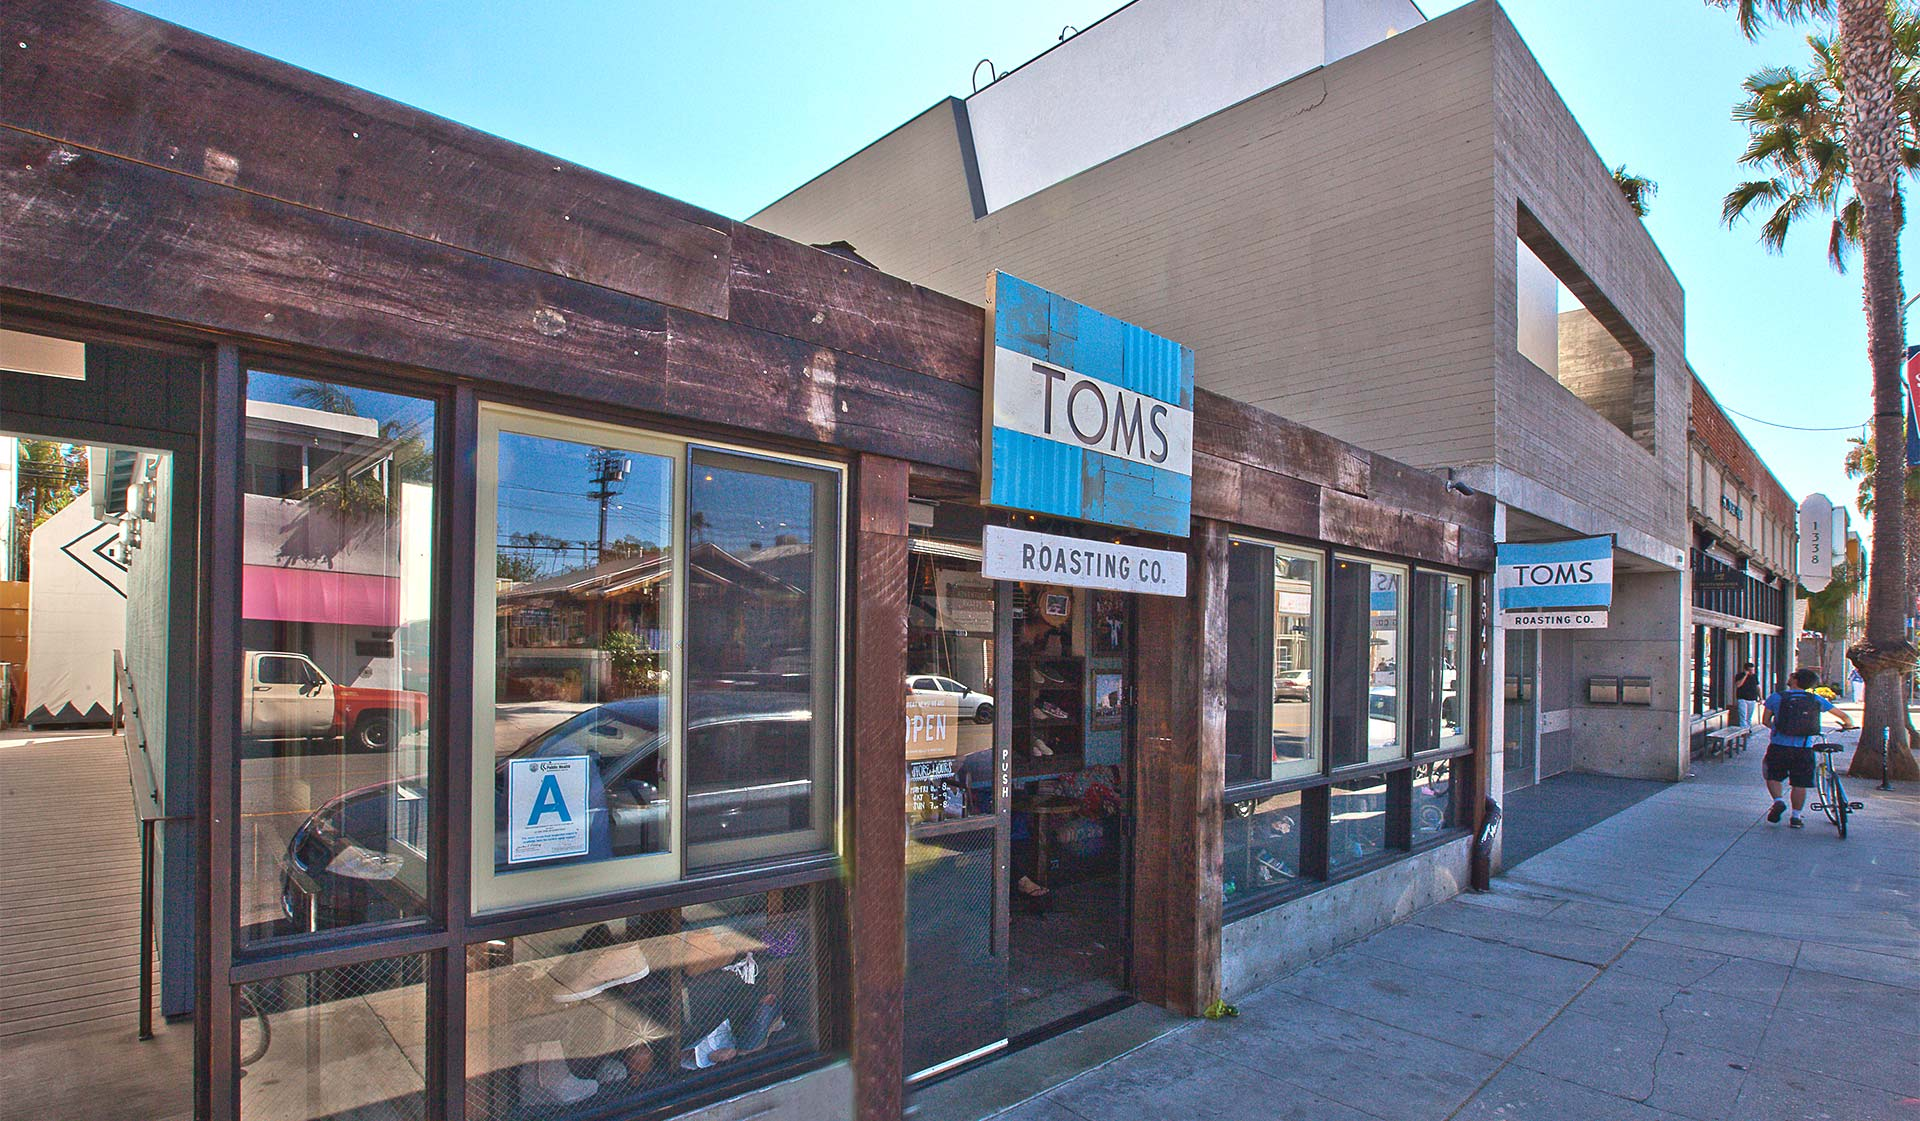 Lincoln Place - Venice, CA - Tom's